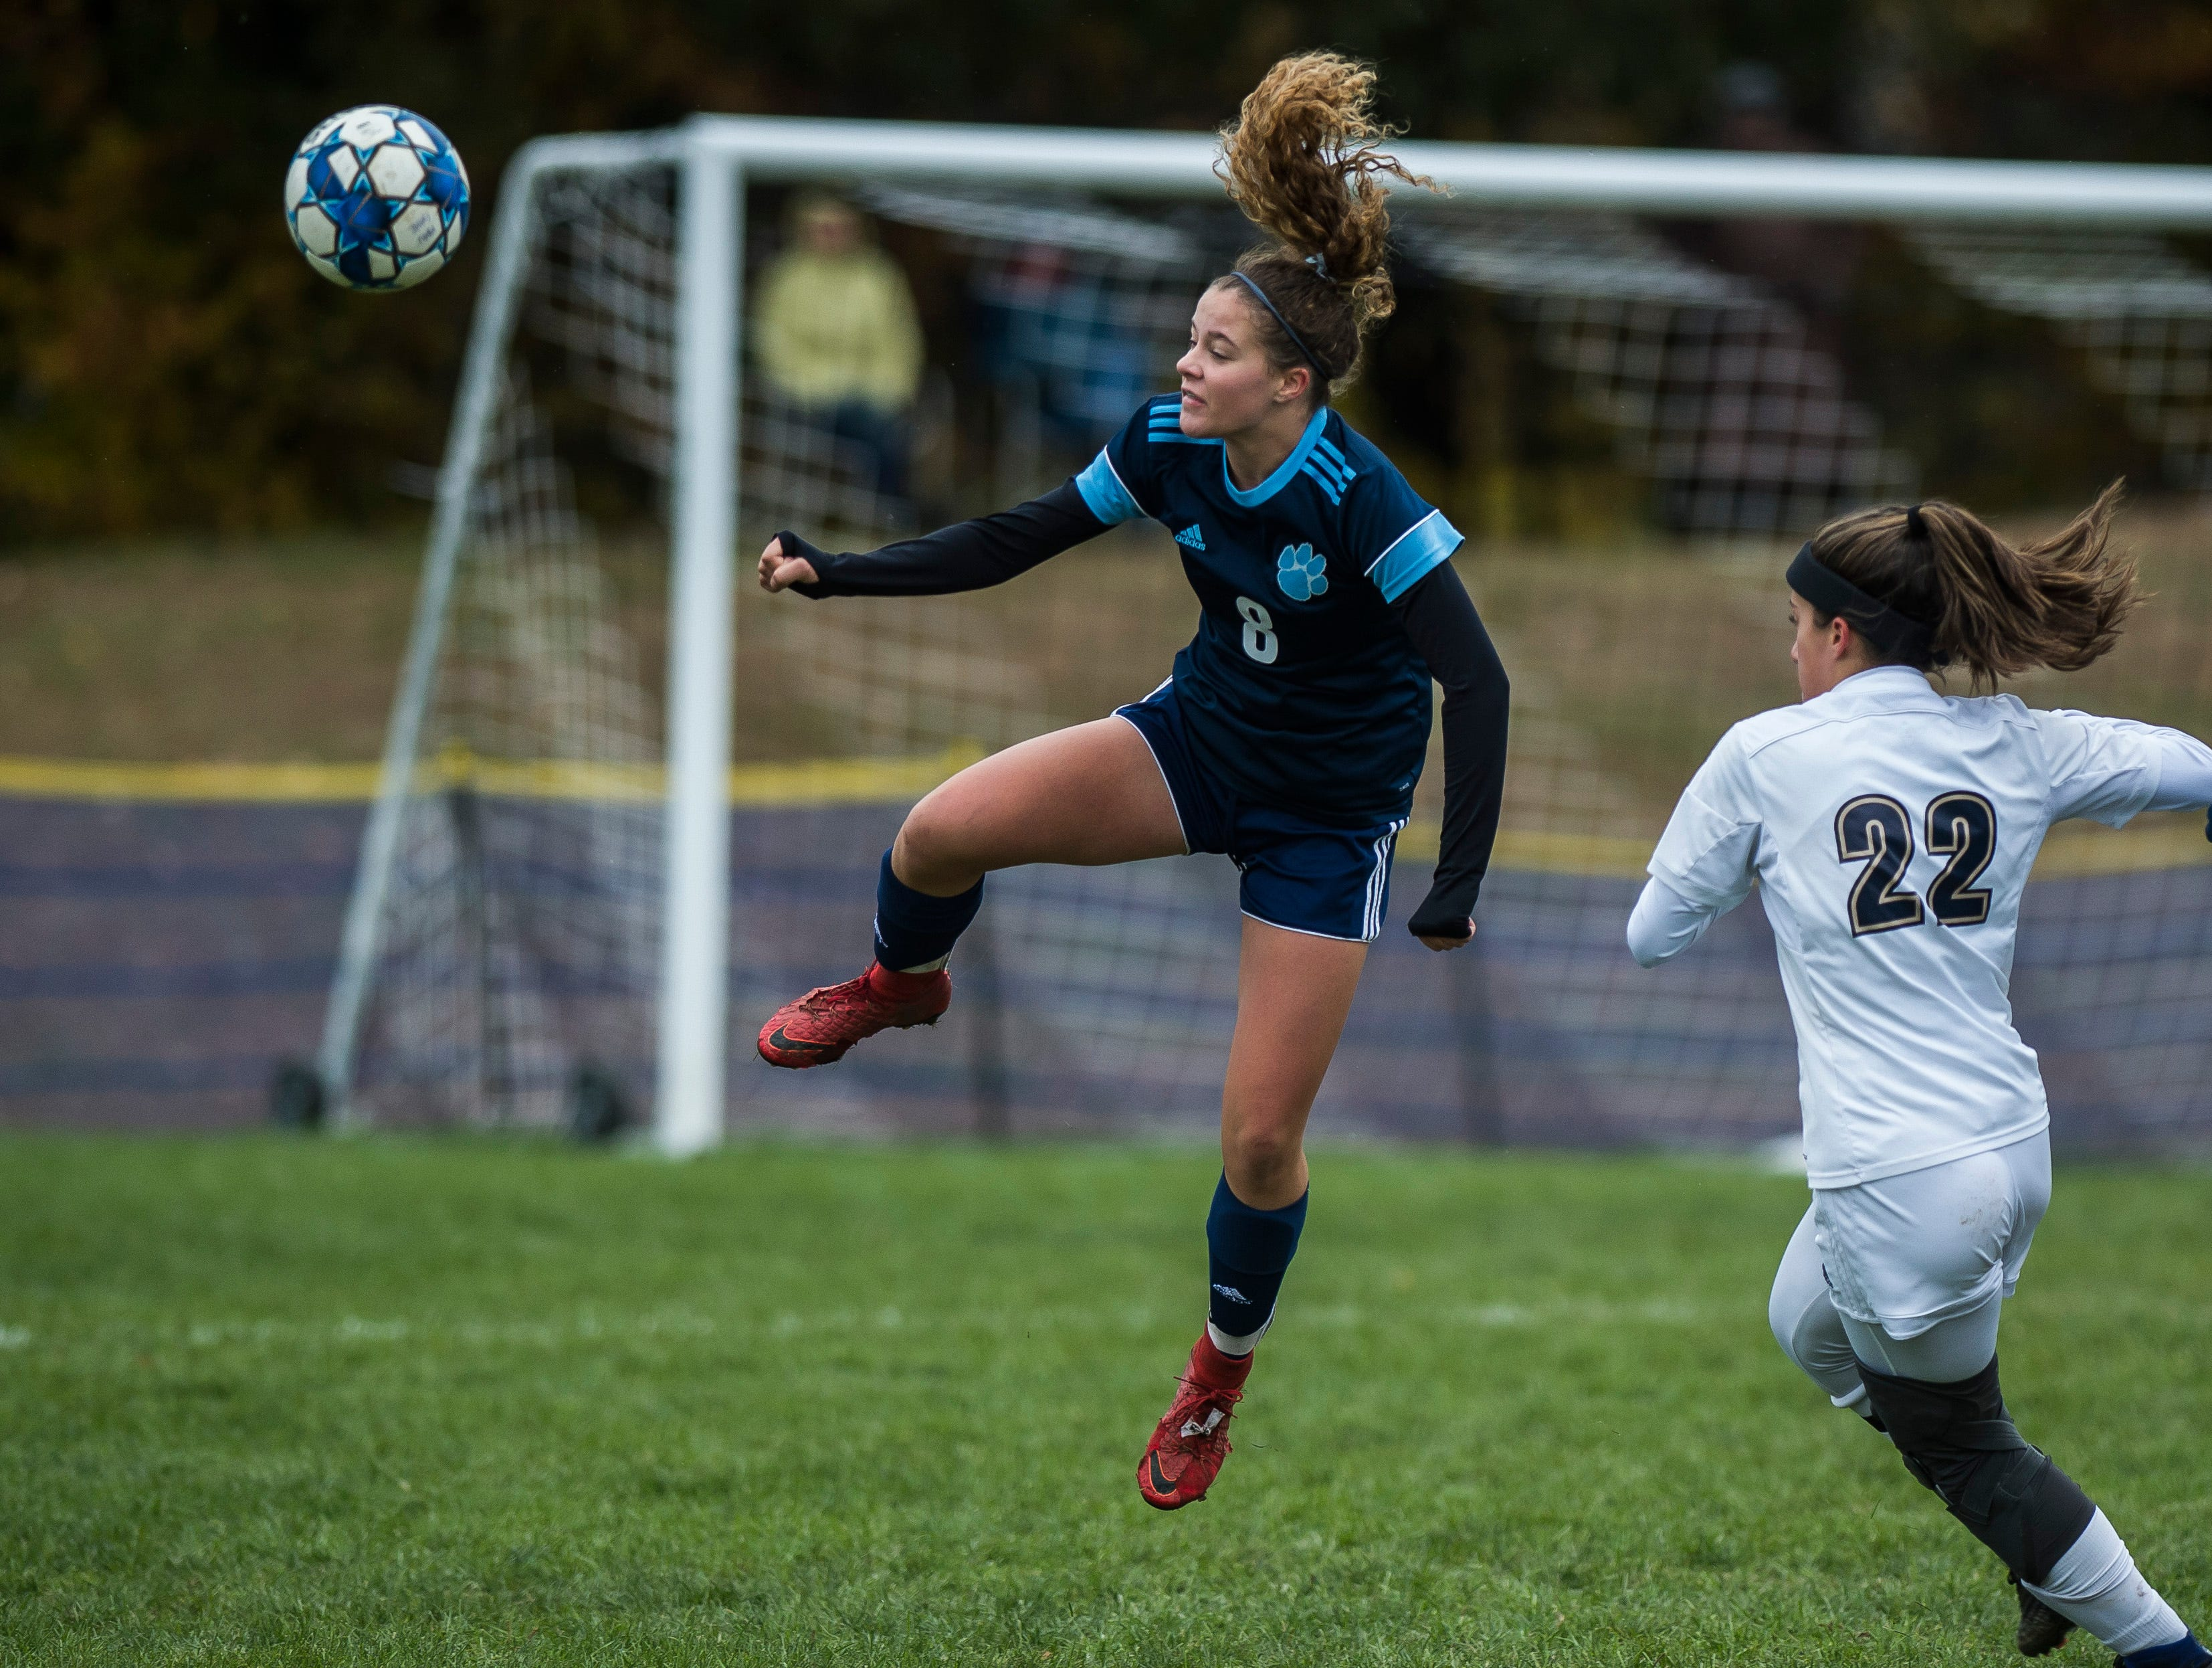 MMU #8 Taylor Bevins heads the ball back up field past Essex #22 Huntyr Poulin during their quarter-final game in Jericho on Saturday, Oct. 27, 2018, that went into double overtime and shootout. Essex took the penalty kick contest to win, 4-1.